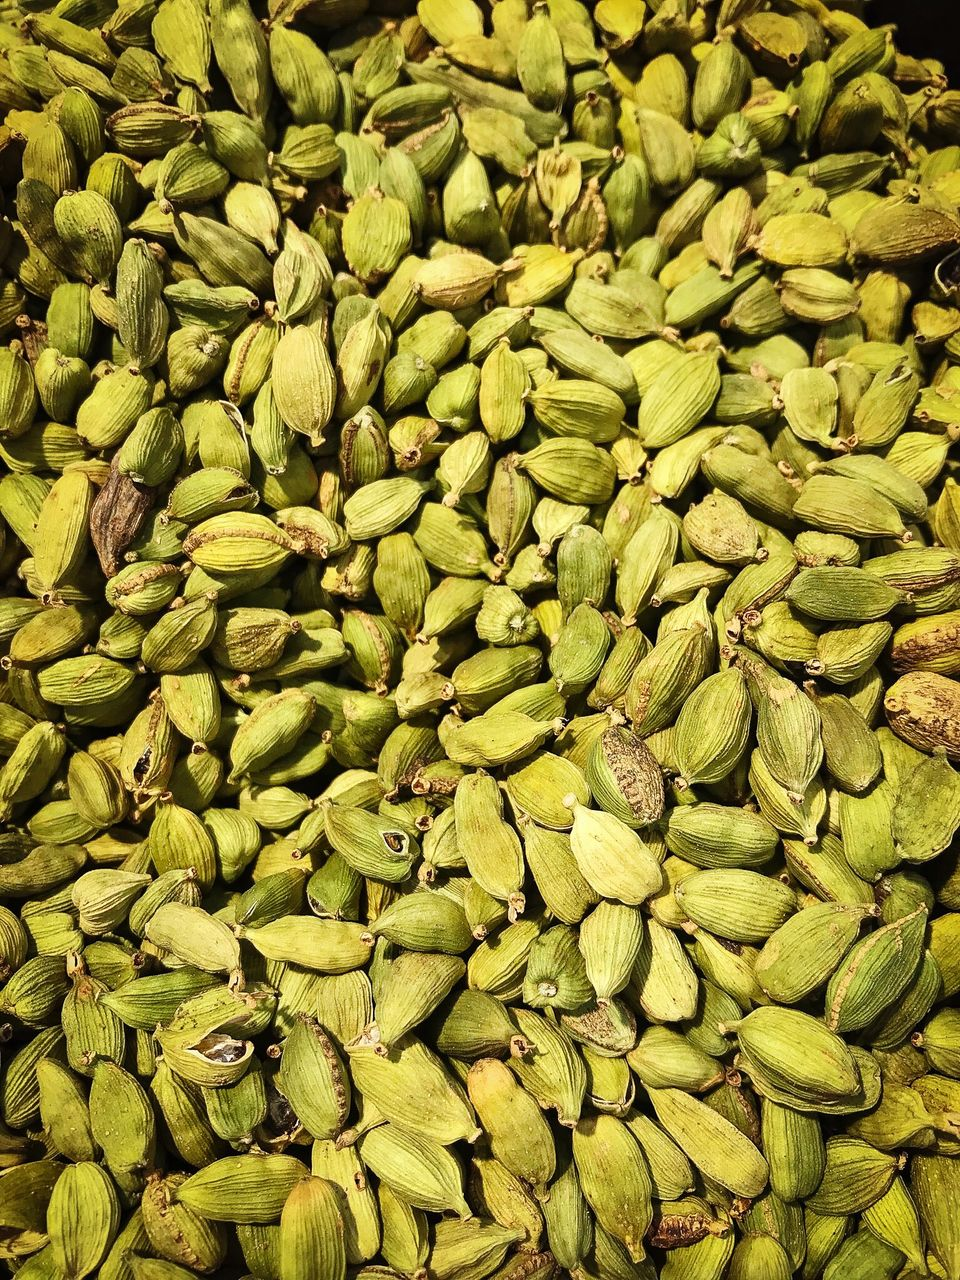 full frame, backgrounds, food and drink, abundance, green color, food, healthy eating, large group of objects, freshness, no people, wellbeing, still life, market, for sale, close-up, retail, high angle view, day, textured, heap, consumerism, cardamom